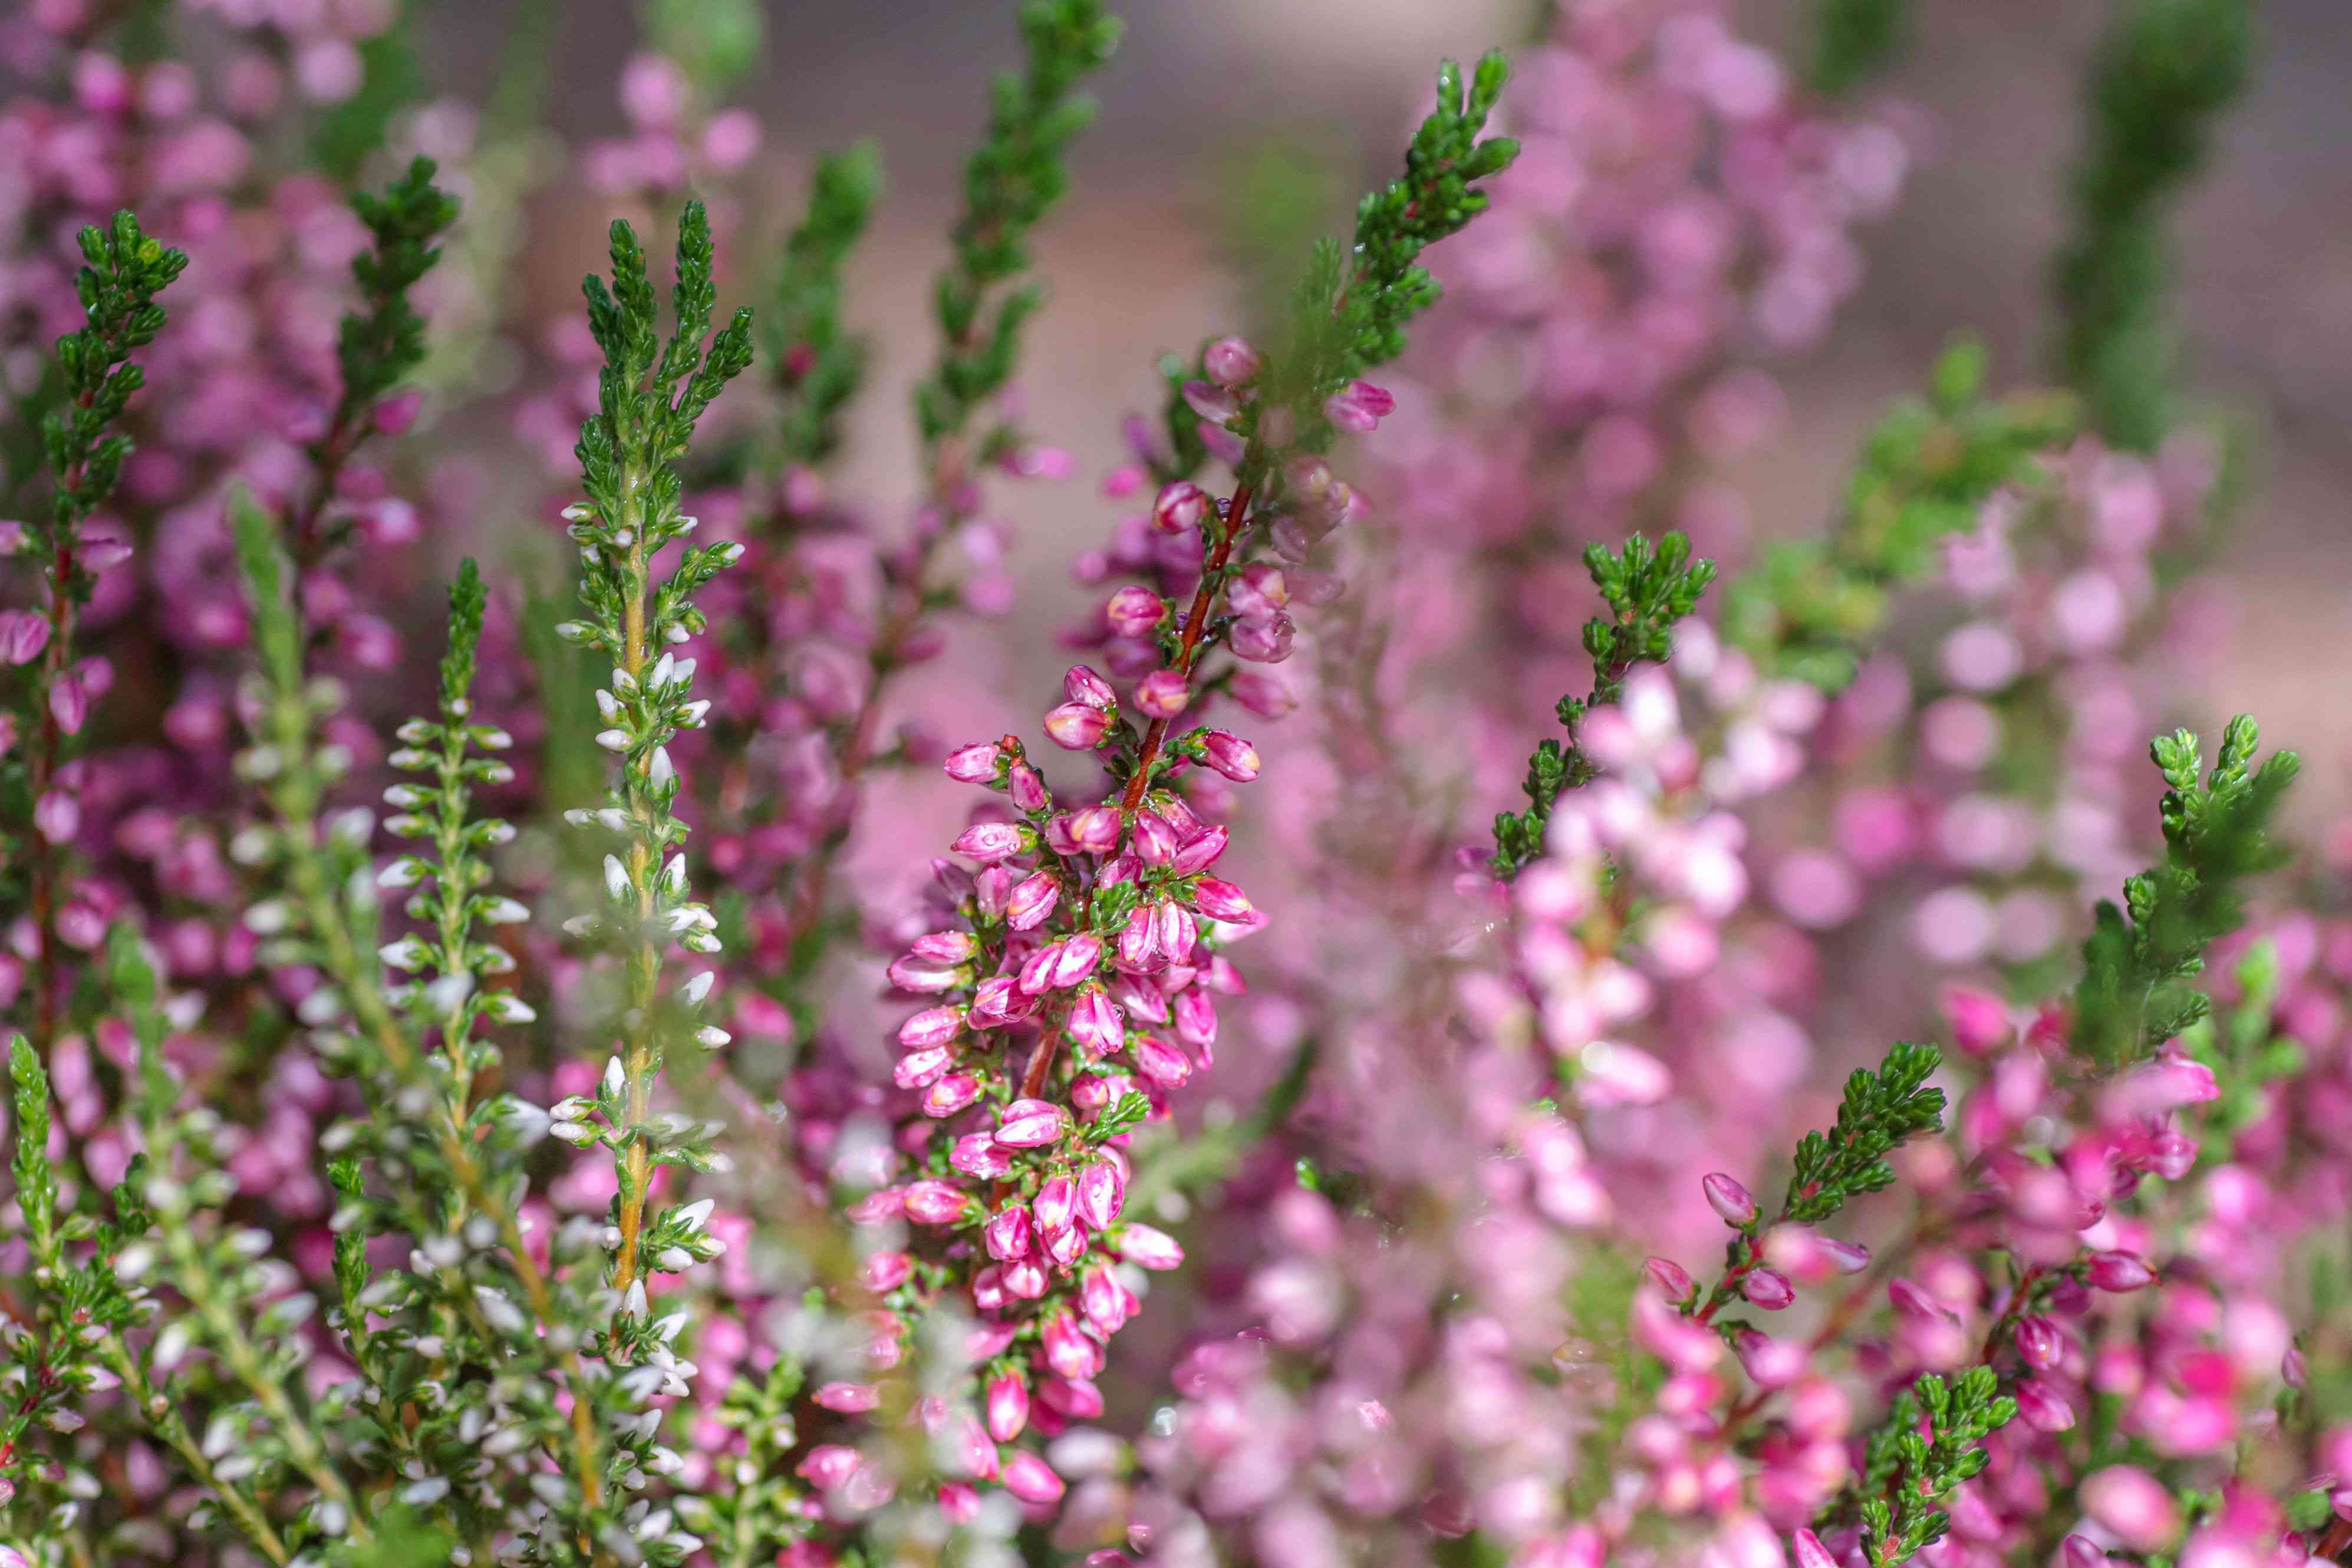 Heather plant with long stems with small pink flowers and white buds